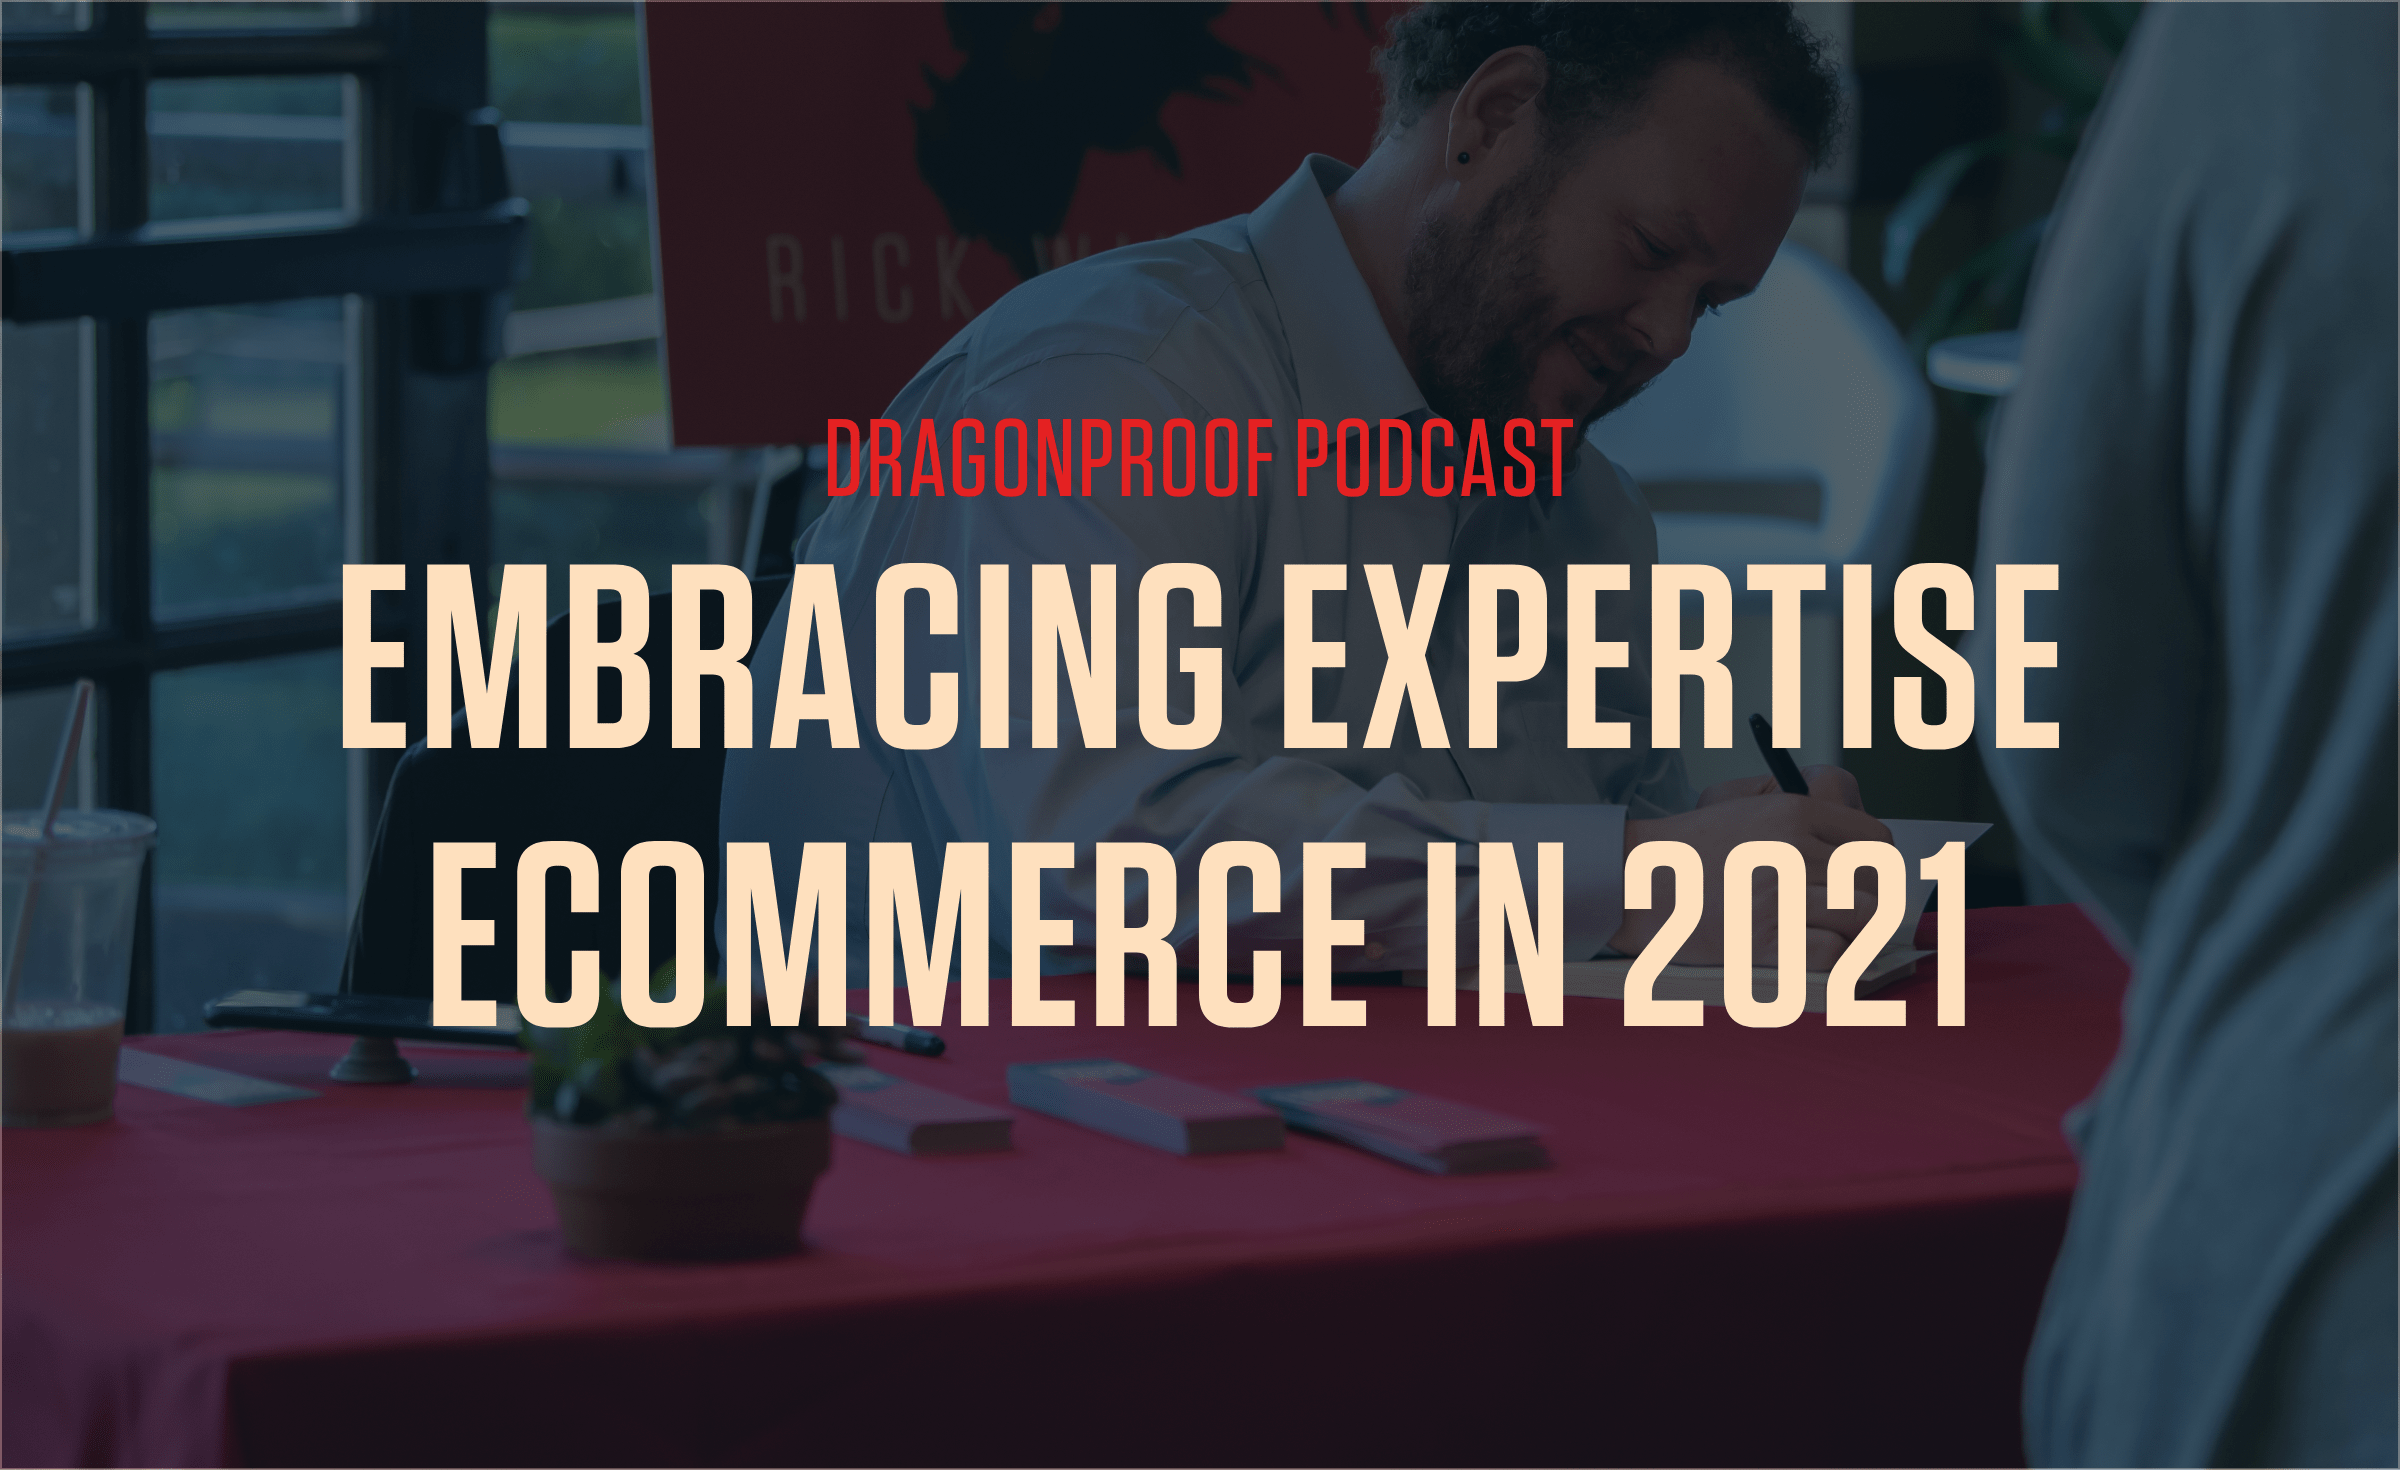 Dragonproof Podcast Title Card - Embracing Expertise Ecommerce in 2021